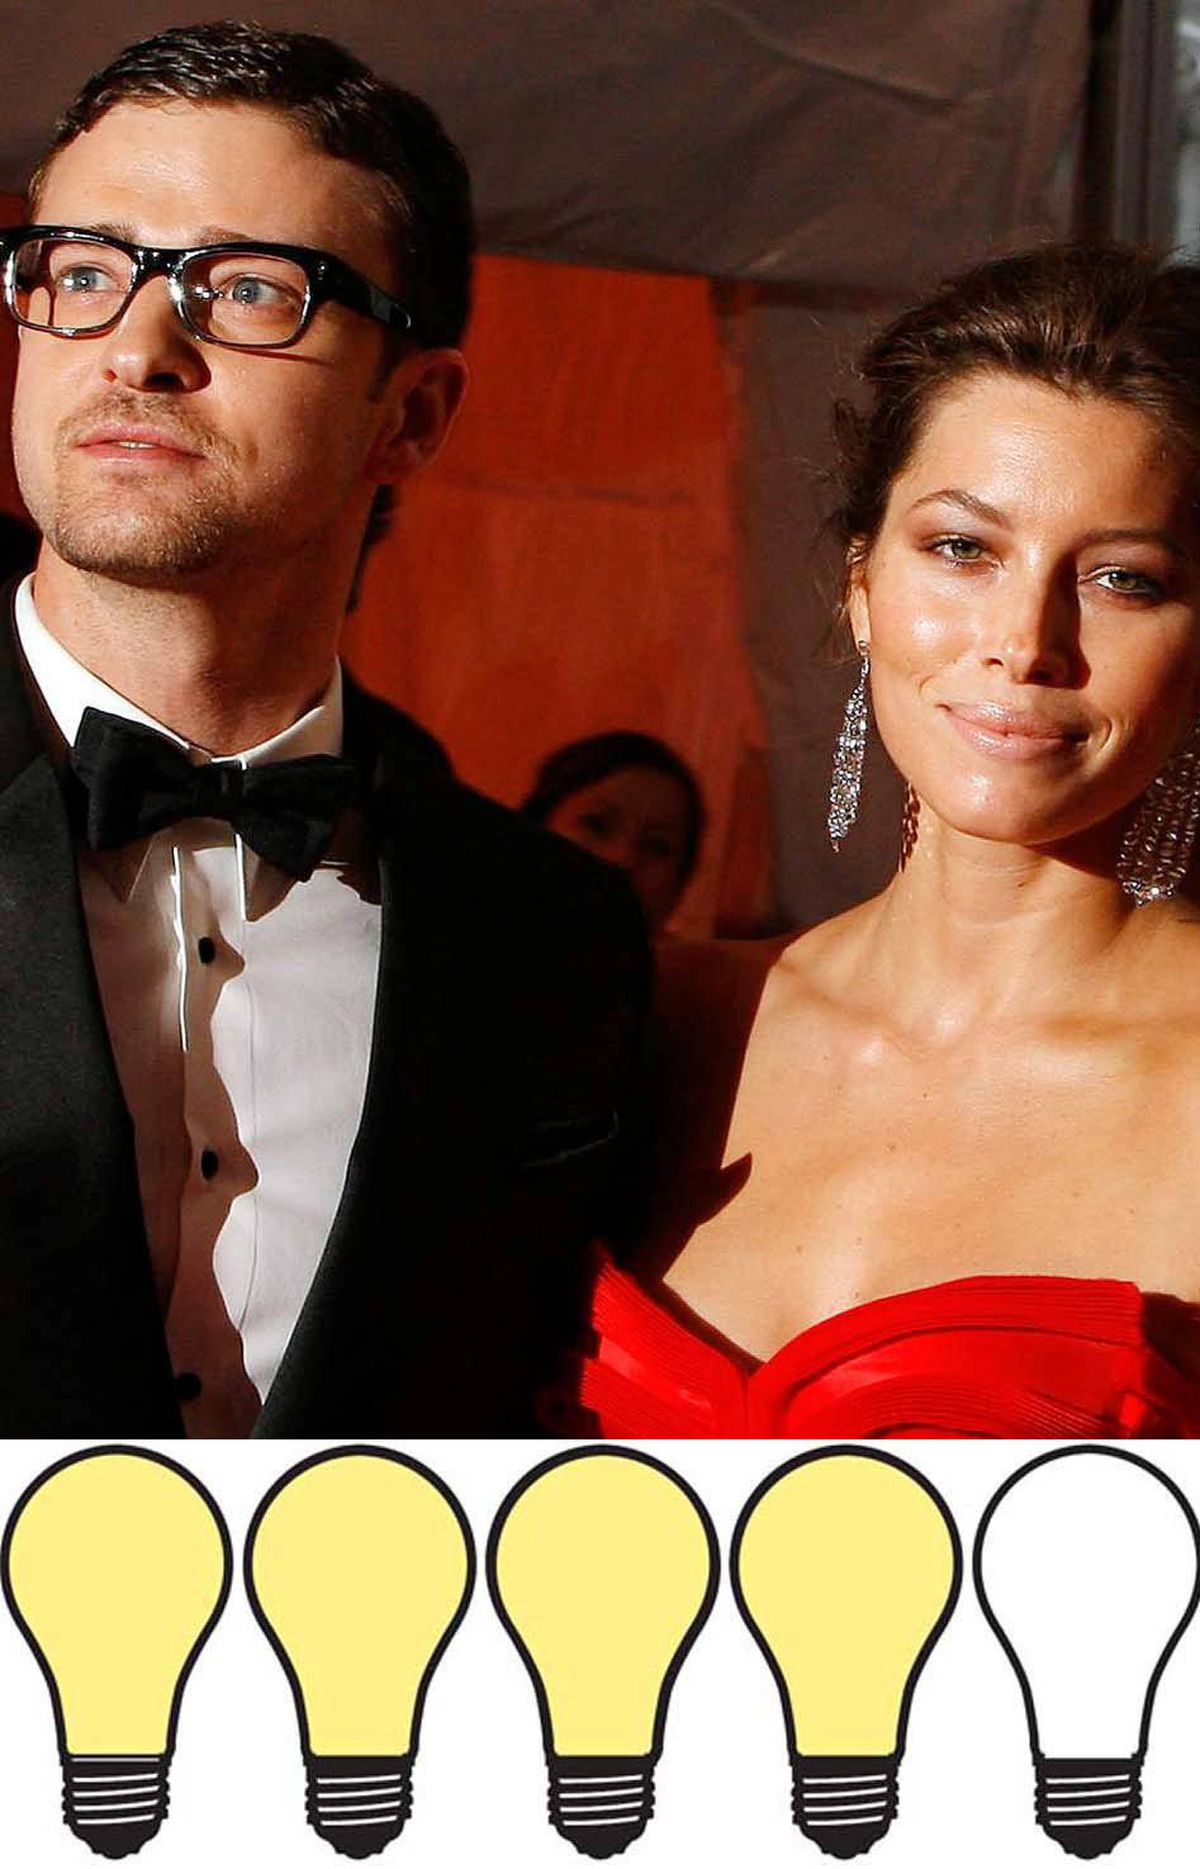 """JESSICA BIEL / JUSTIN TIMBERLAKE: 80 watts Now that Jessica Biel and Justin Timberlake are rumoured to be engaged, they're going to need one of those moronic mash-up names – Brangelina, Tomkat, etc. – to signify their place in the celebrity-couple firmament. Contenders include Timberbiel and, though not a portmanteau, the hip-with-it sounding """"Double J."""" I'm nominating """"Jessilake."""" Either way, congratulations are in order. The celebrity gossip machine loves weddings, and while your engagement has yet to be confirmed, the mere rumour of it lit the Internet on fire."""